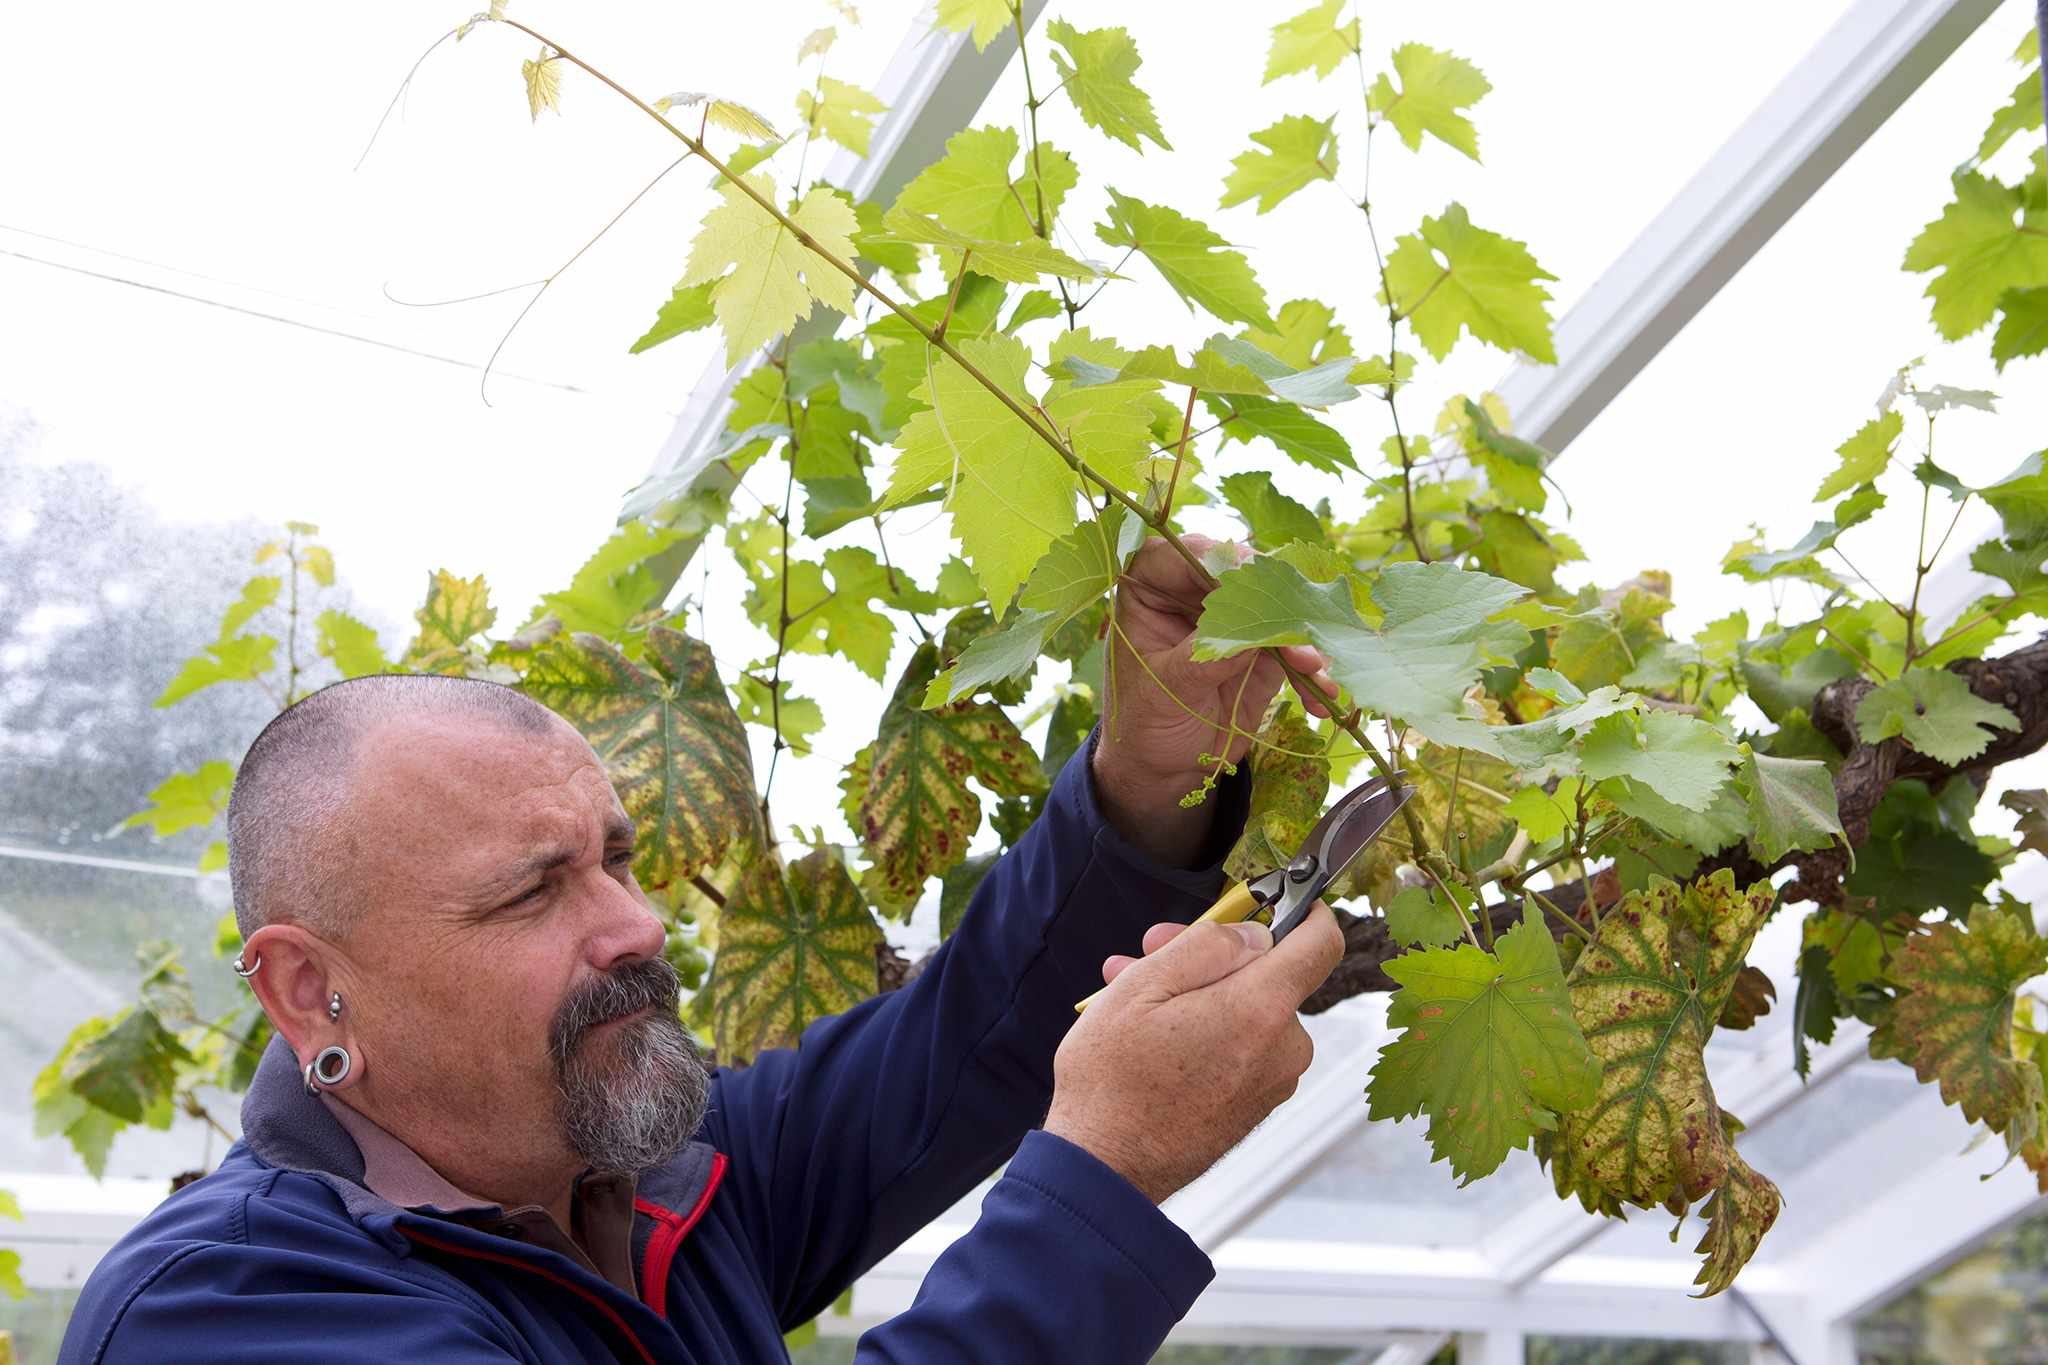 Pruning a grapevine